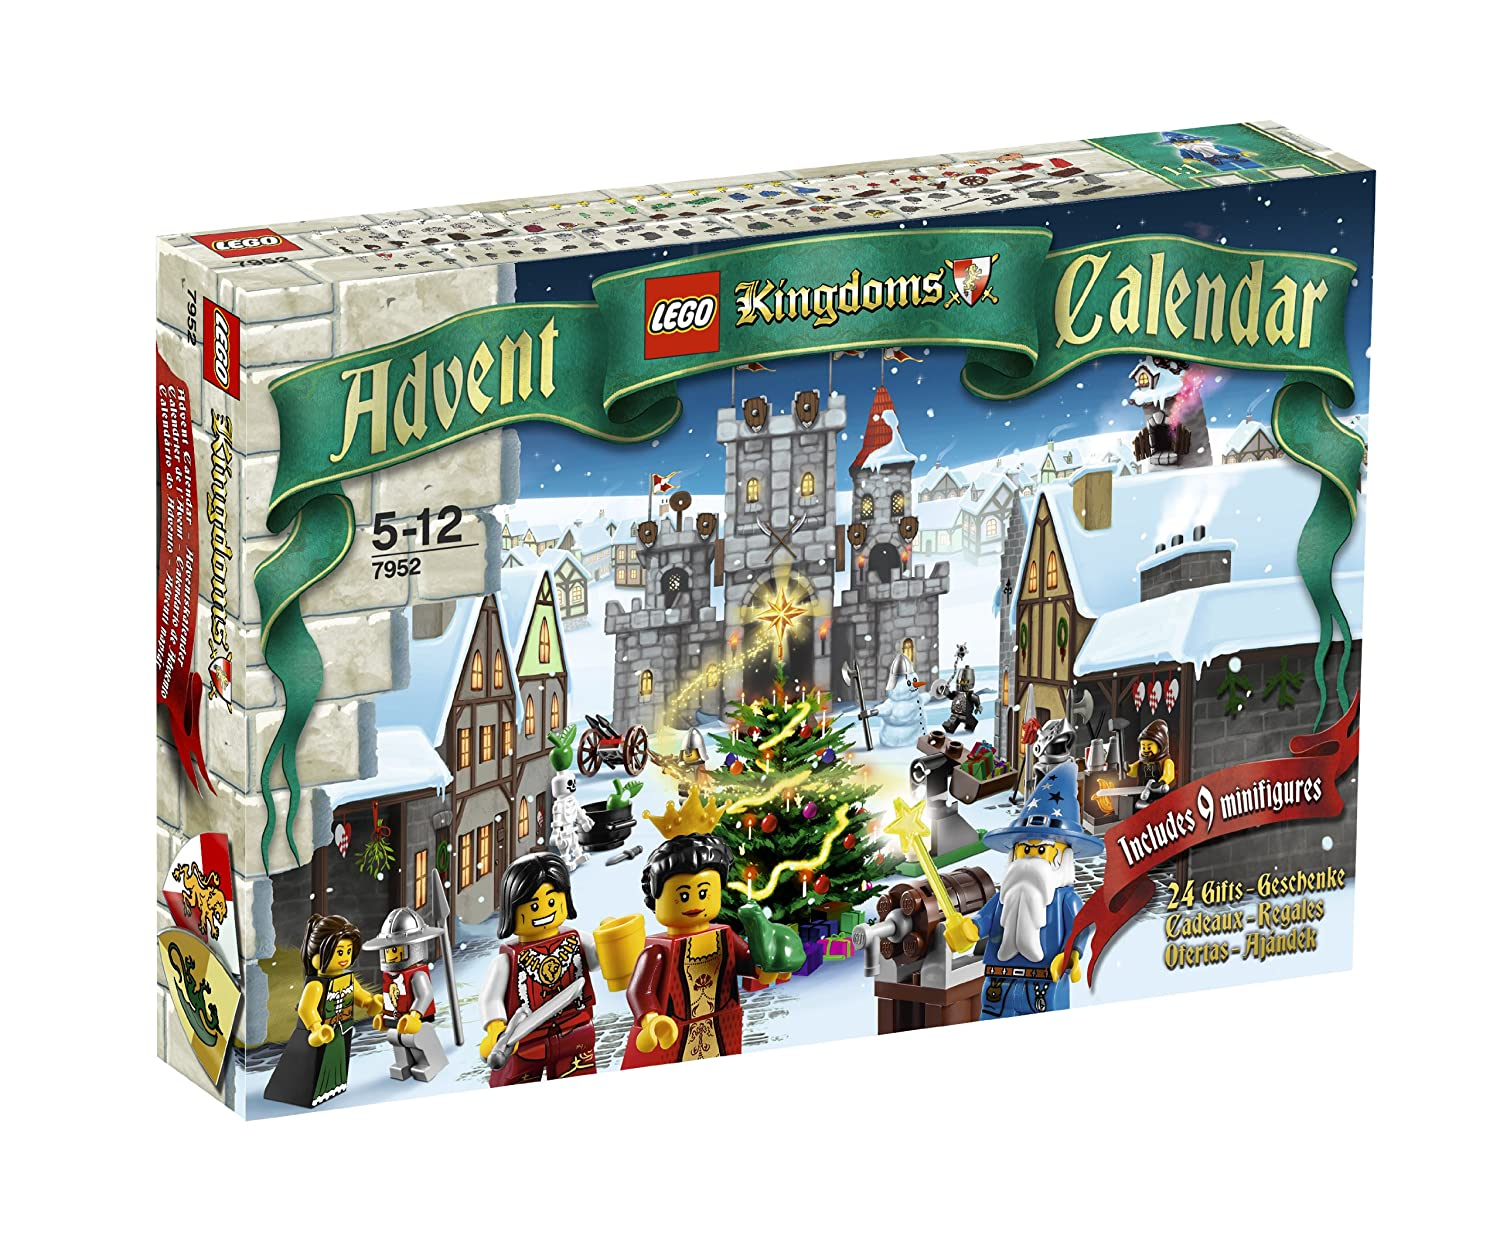 LEGO Kingdoms 7952 – Advent Calendar